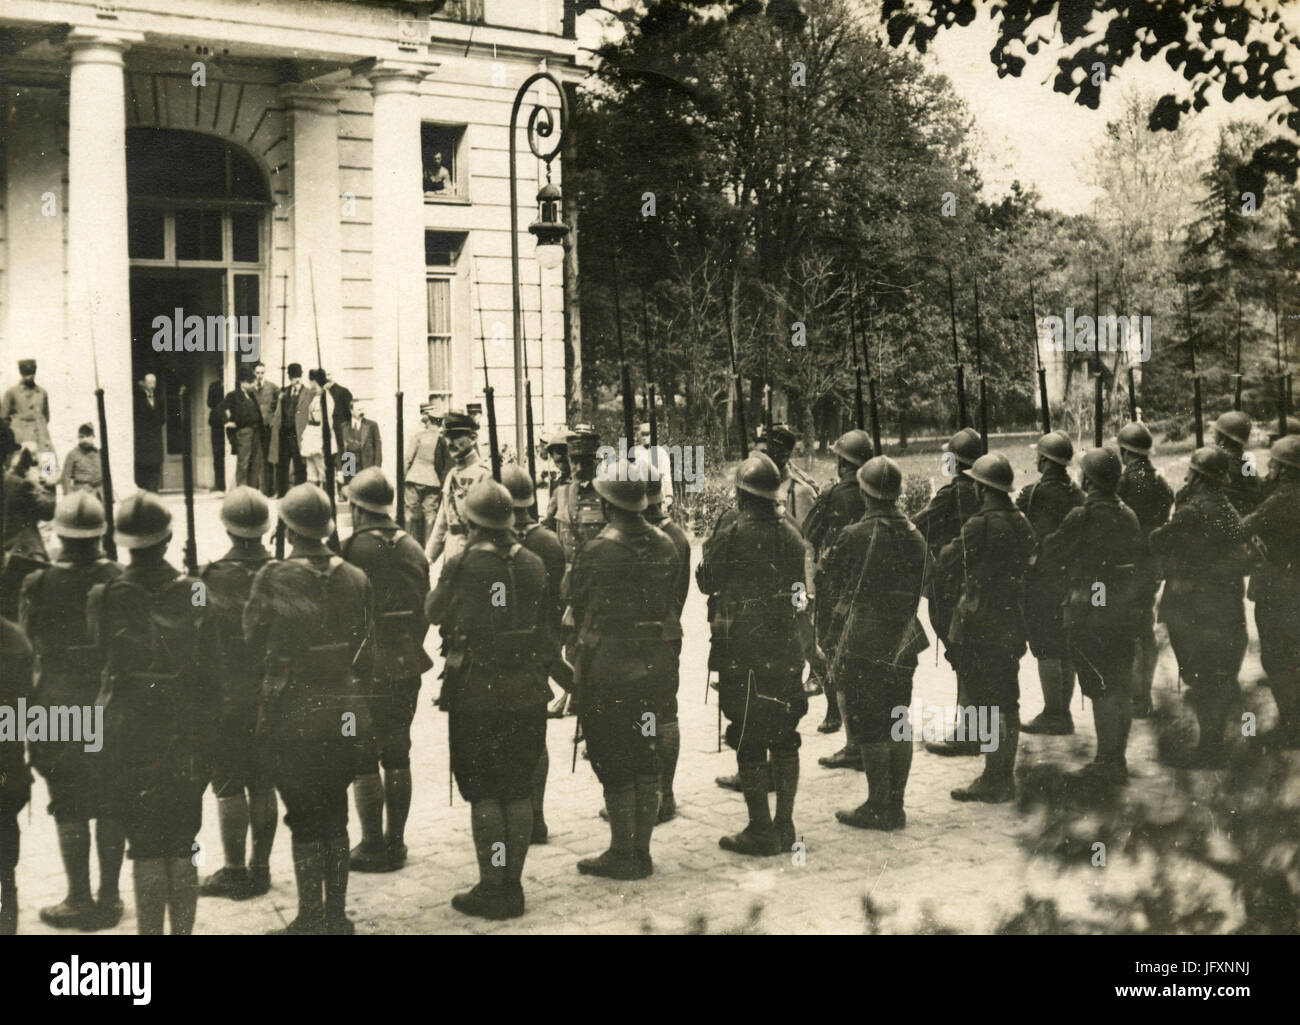 French Marshall Ferdinand Foch revues the troups at Versailles for the Peace Treaty after WW1, France - Stock Image